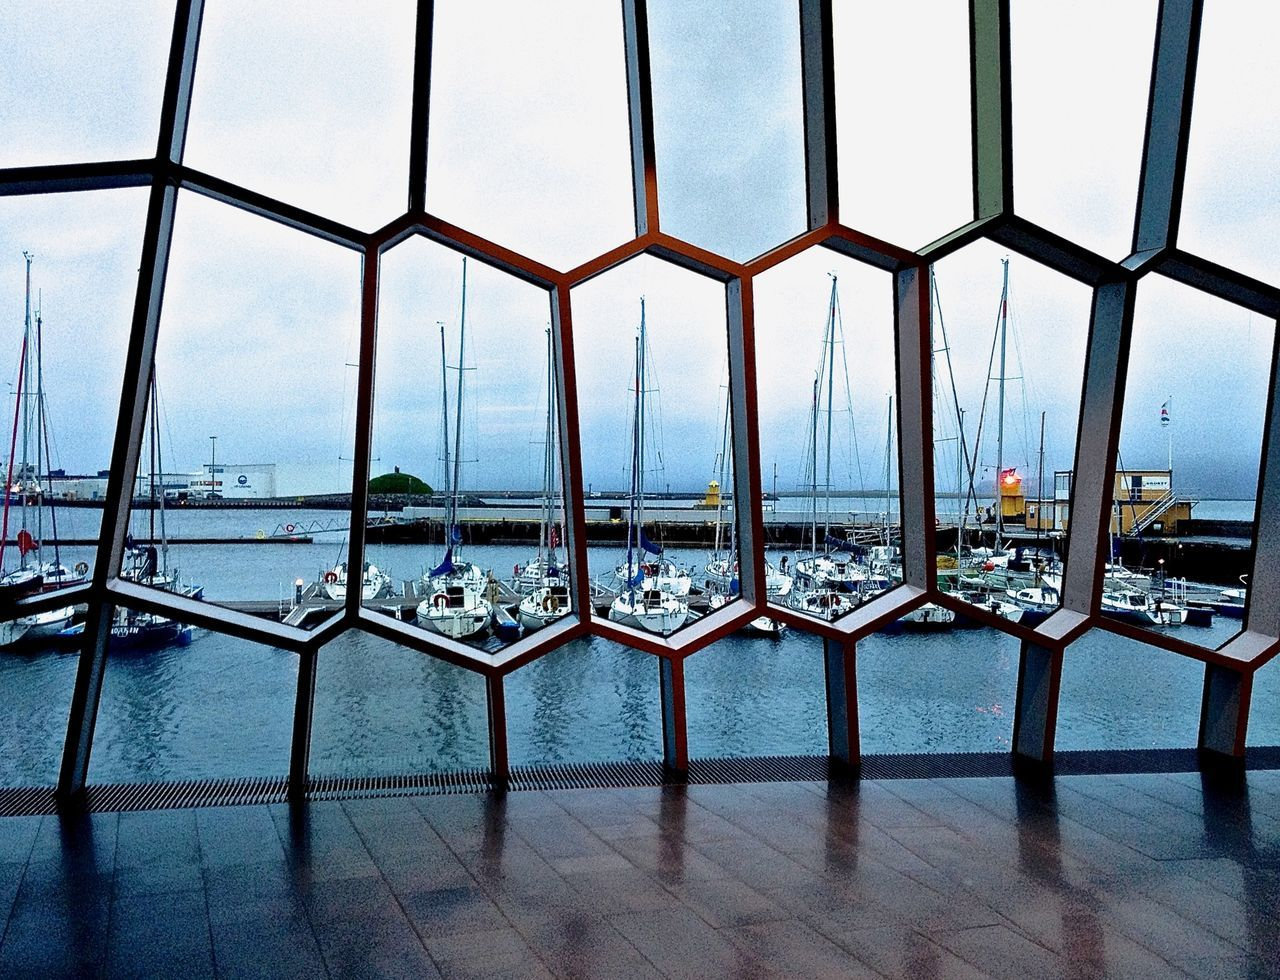 Architectural Detail Iceland Iceland_collection Architecture Reykjavik Harpa Konzerthaus Olafur Eliasson Amazing Architecture Iceland Memories